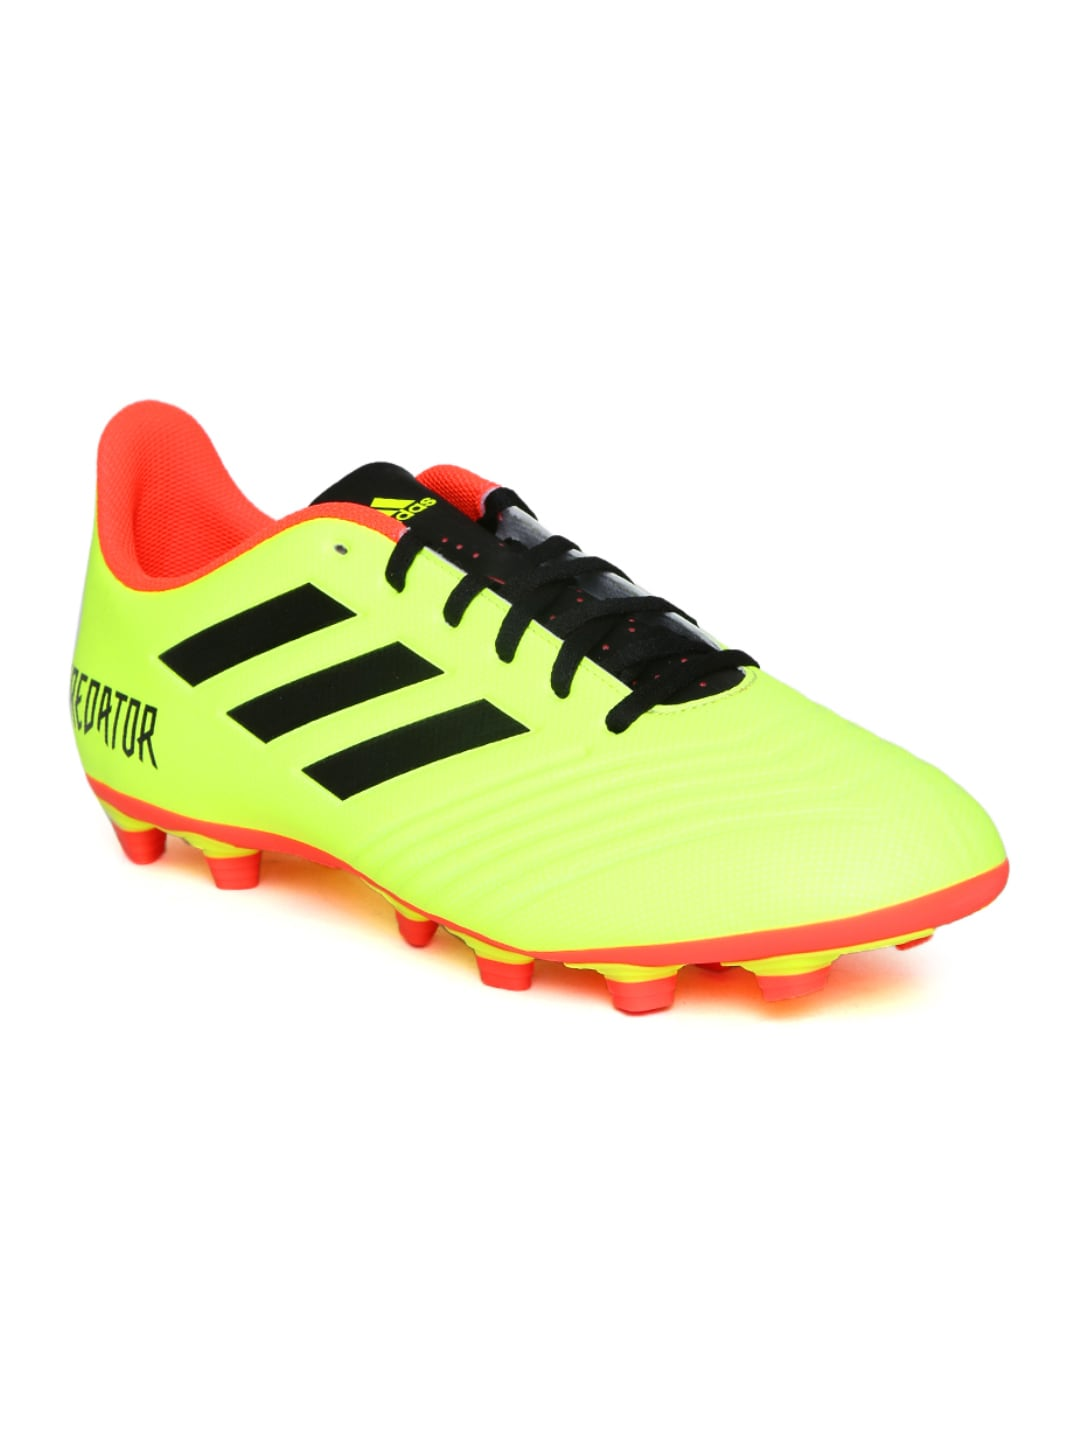 4ea442598ef8 Adidas Football Shoes - Buy Adidas Football Shoes for Men Online in India